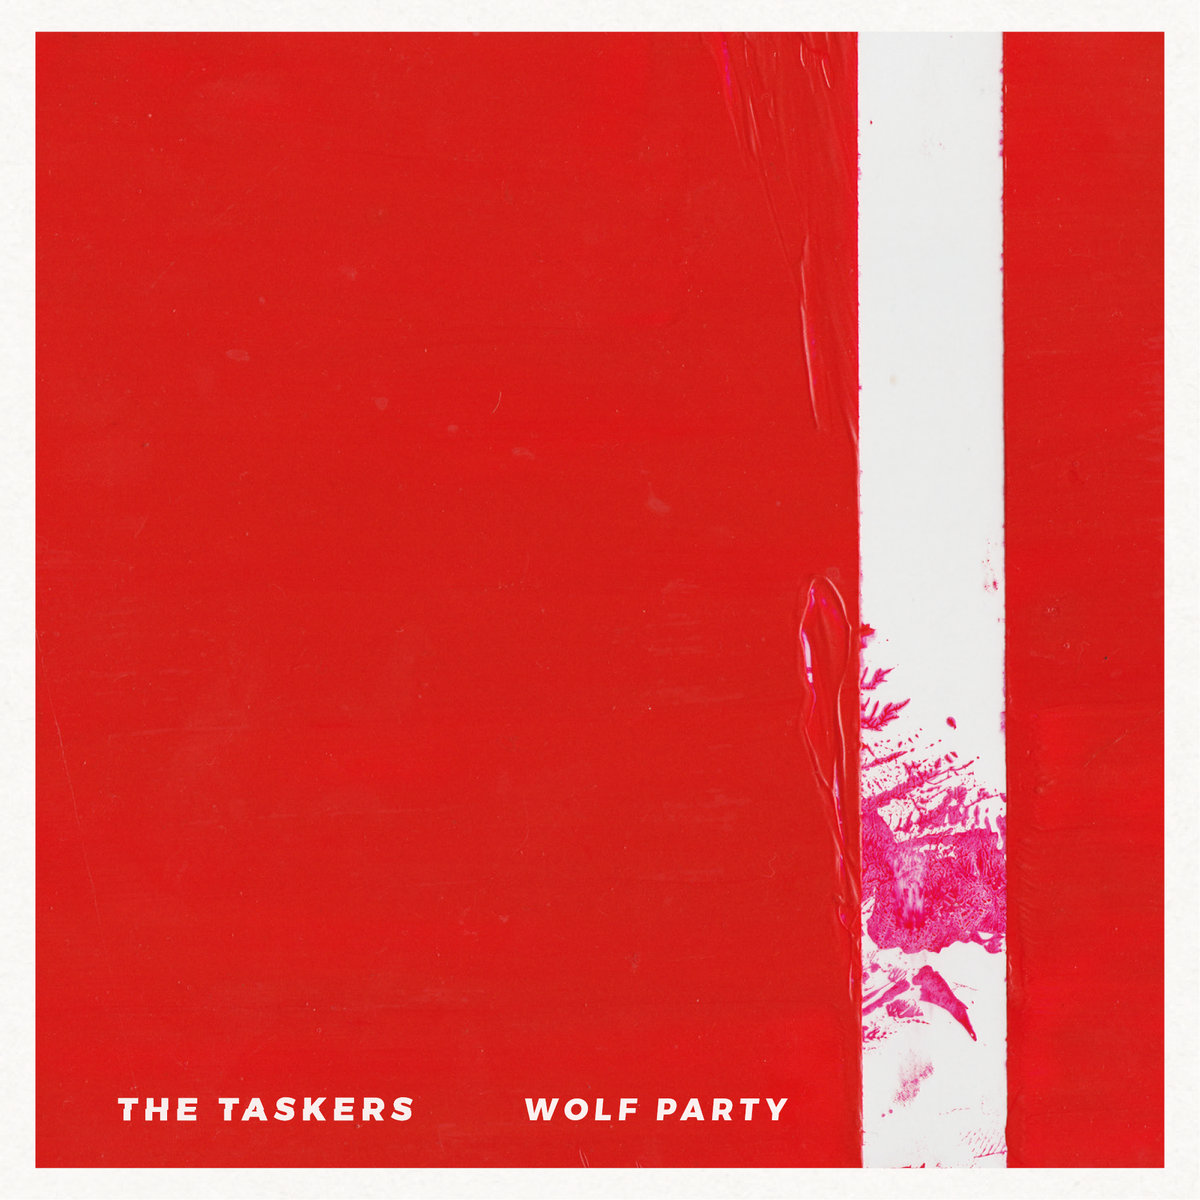 The Taskers – 'Wolf Party' Album Review